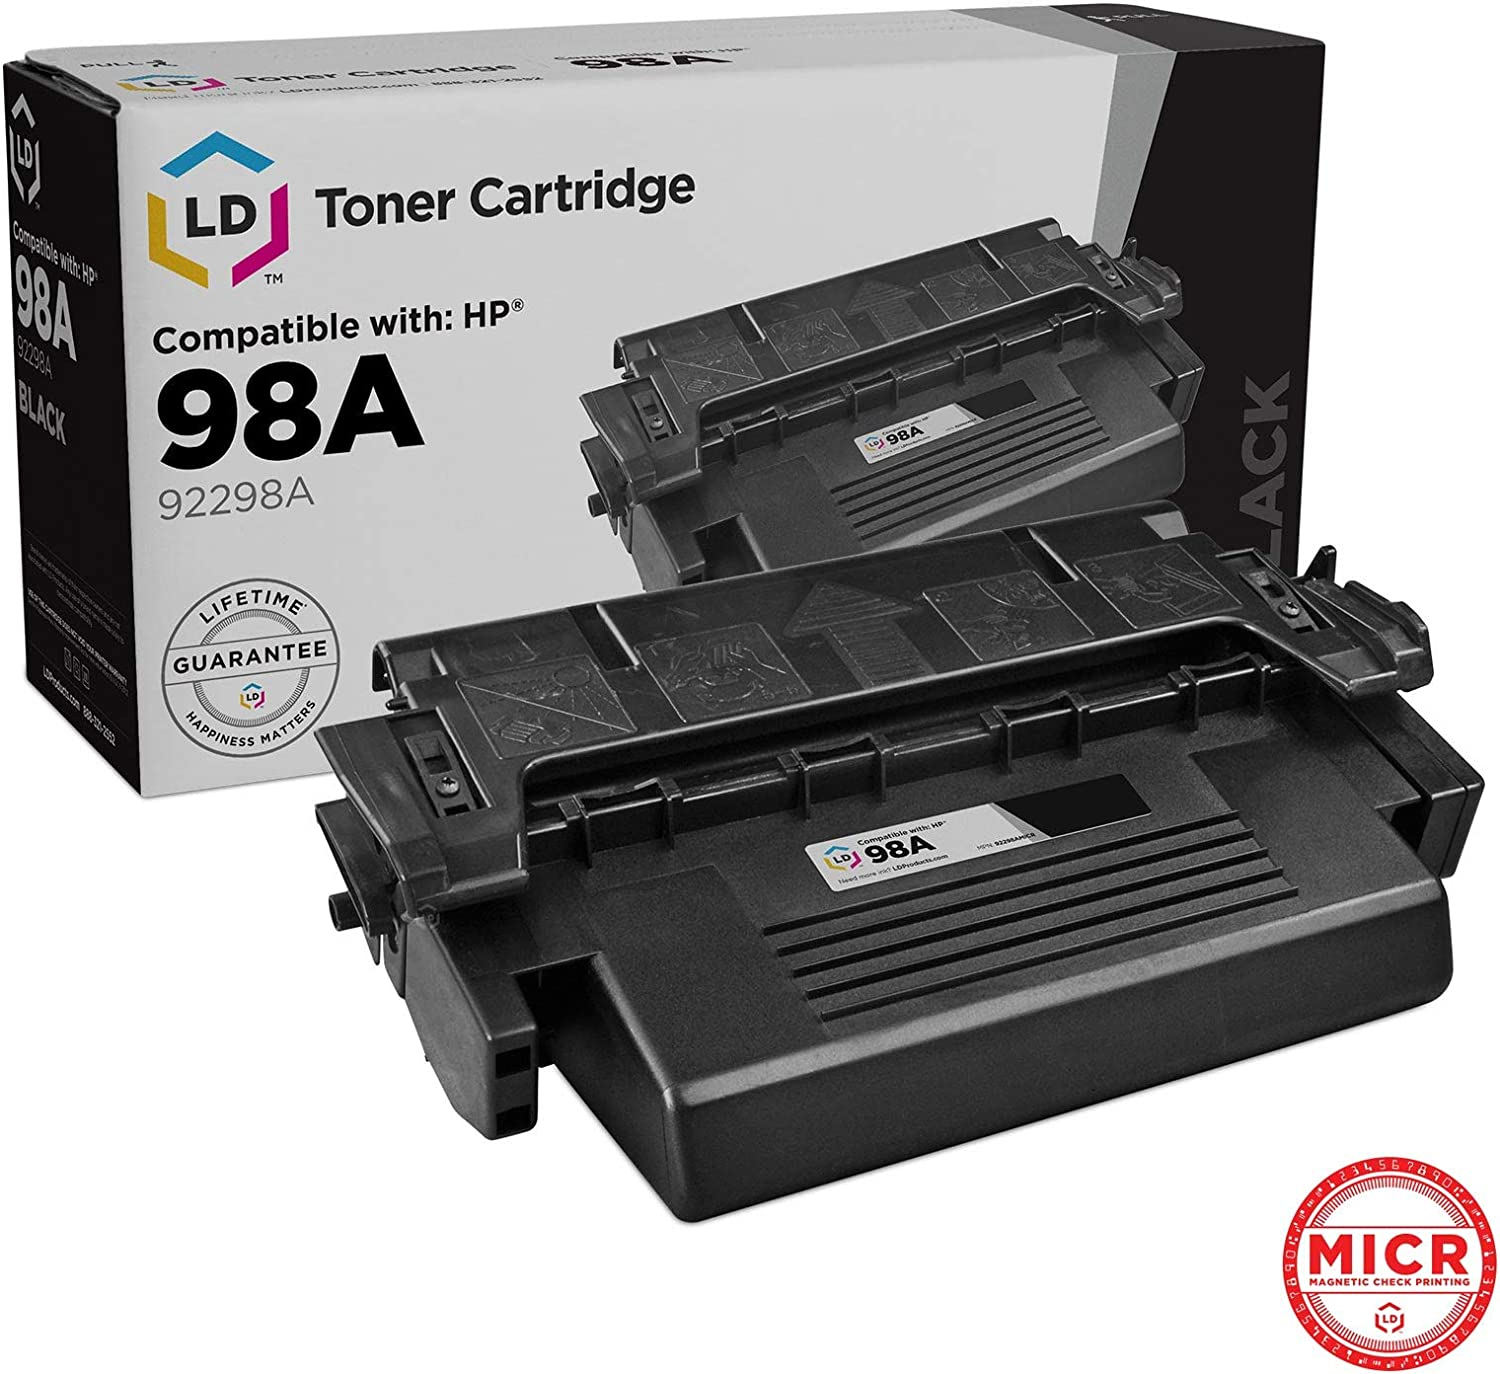 LD Remanufactured MICR Toner Cartridge Replacement for HP 98A 92298A (Black)